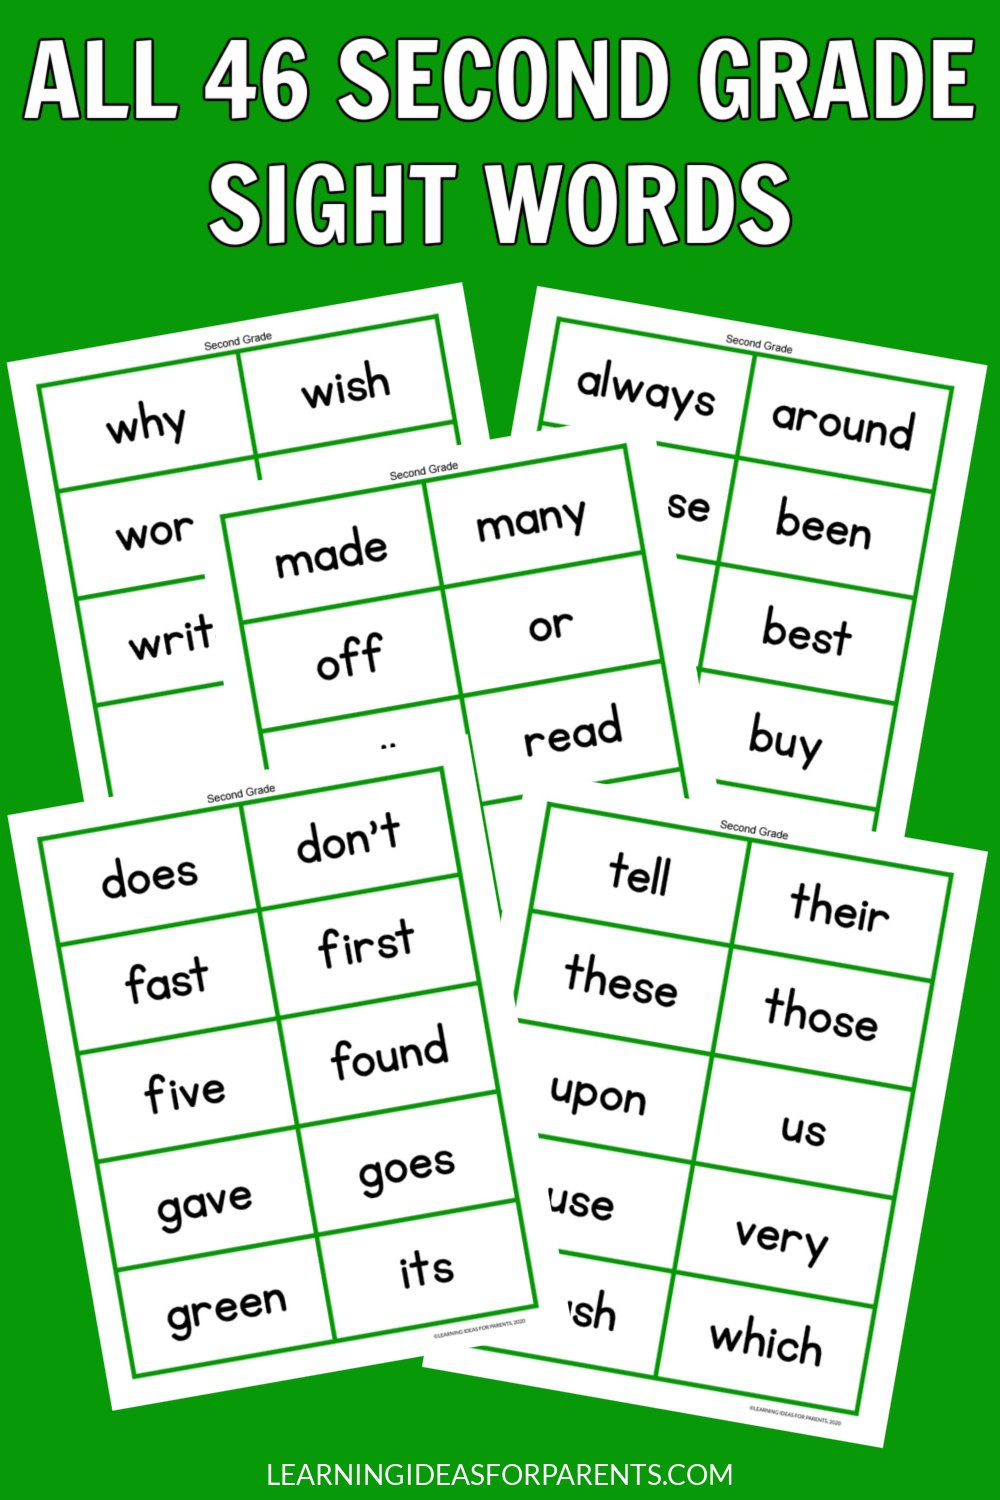 Free printable sight words flash cards for all 46 Dolch second grade words.